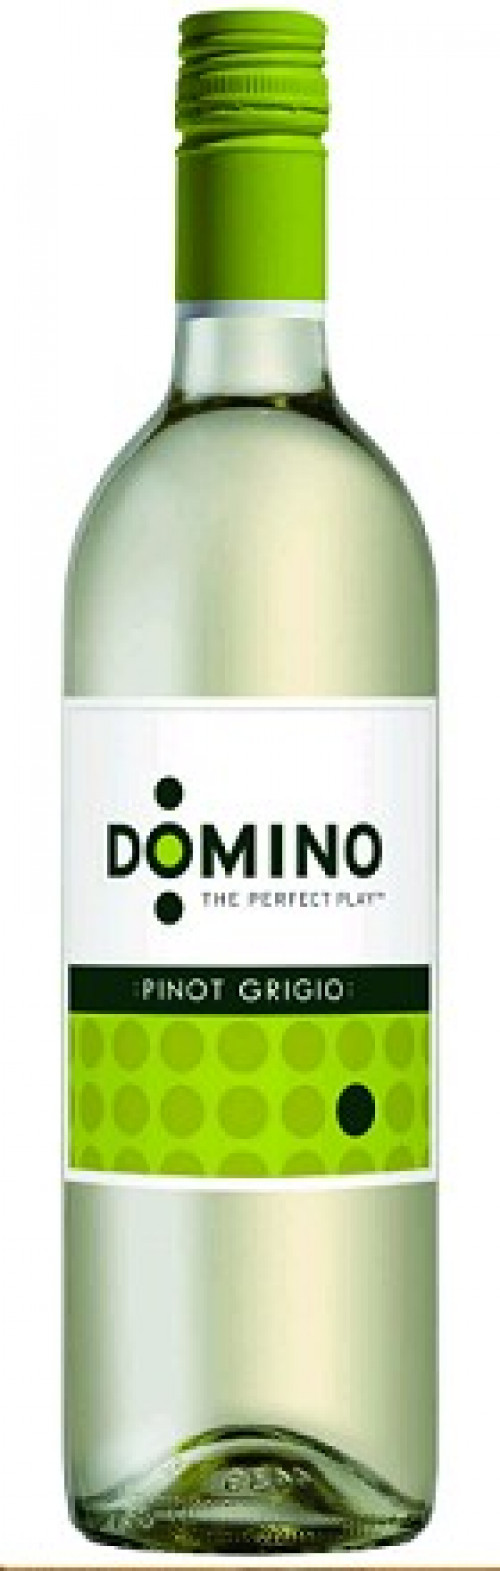 Domino Pinot Grigio 750ml NV